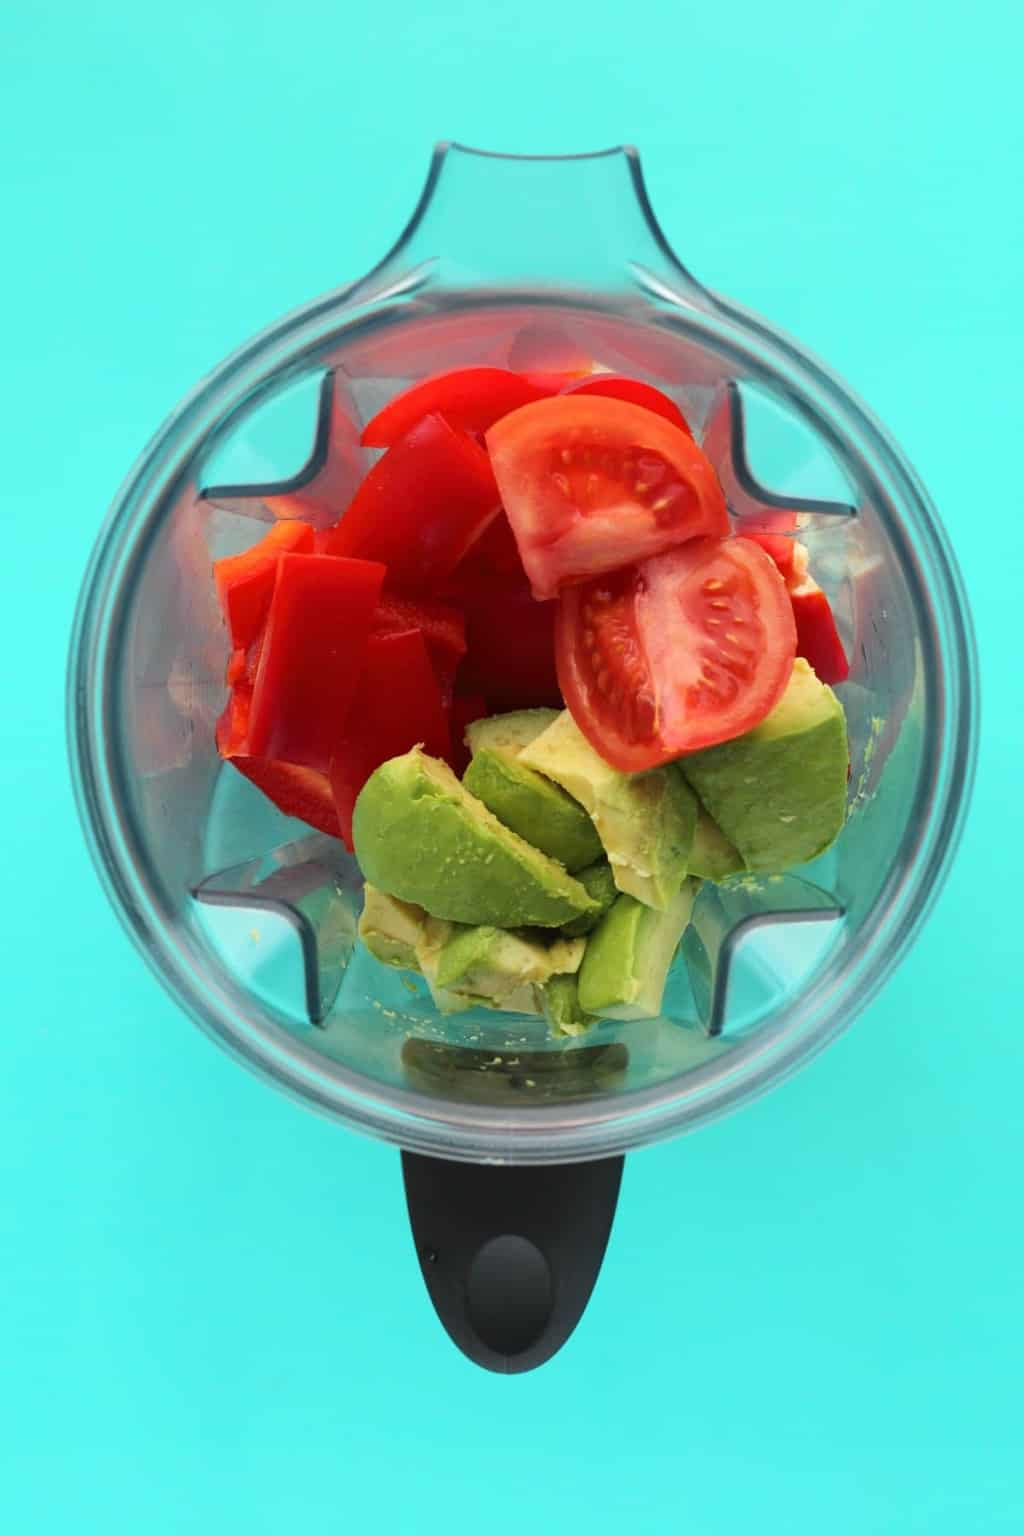 Ingredients for a raw tomato soup in a blender jug ready to be blended.